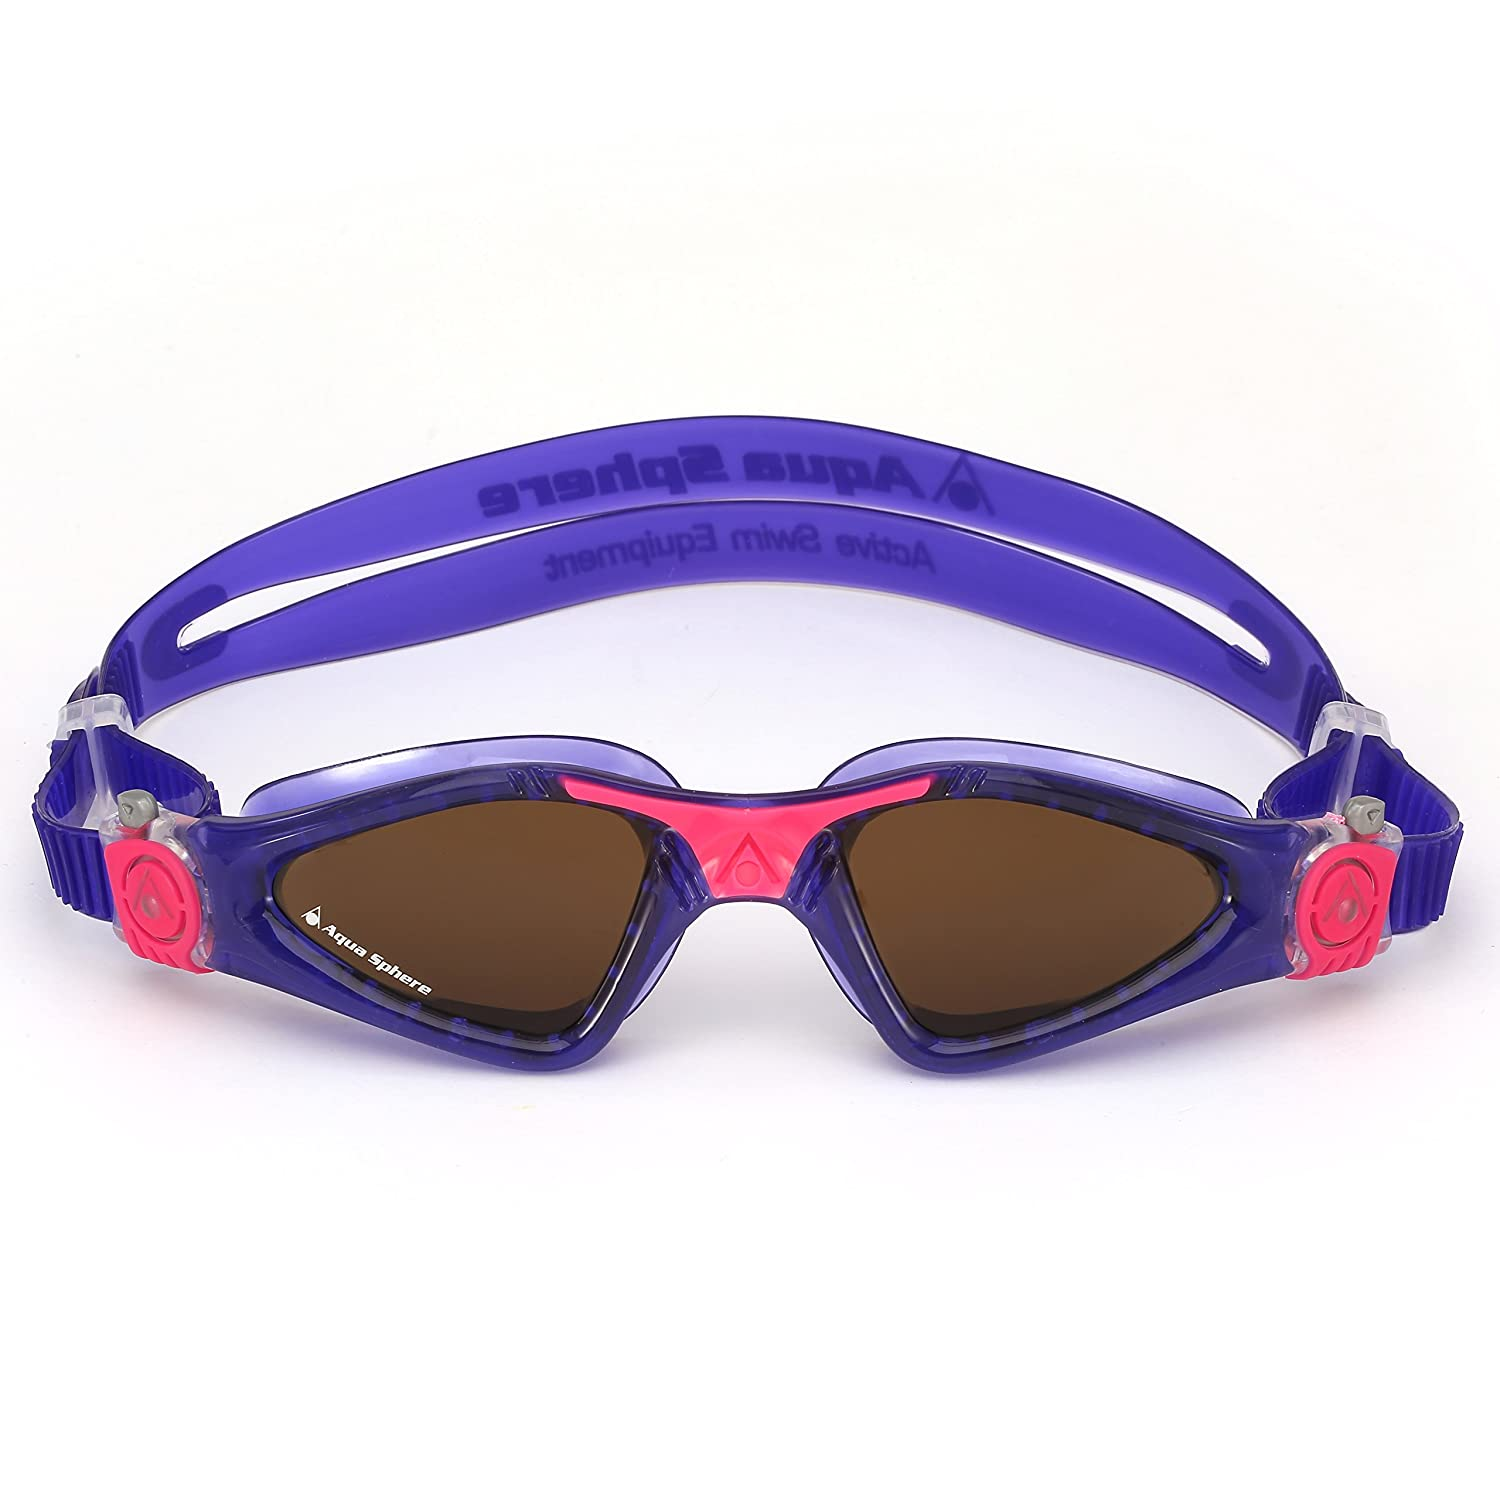 4c146daa1a0 Amazon.com   Aqua Sphere Kayenne Ladies Polarized Lens Swimming Goggles -  Violet Pink   Sports   Outdoors